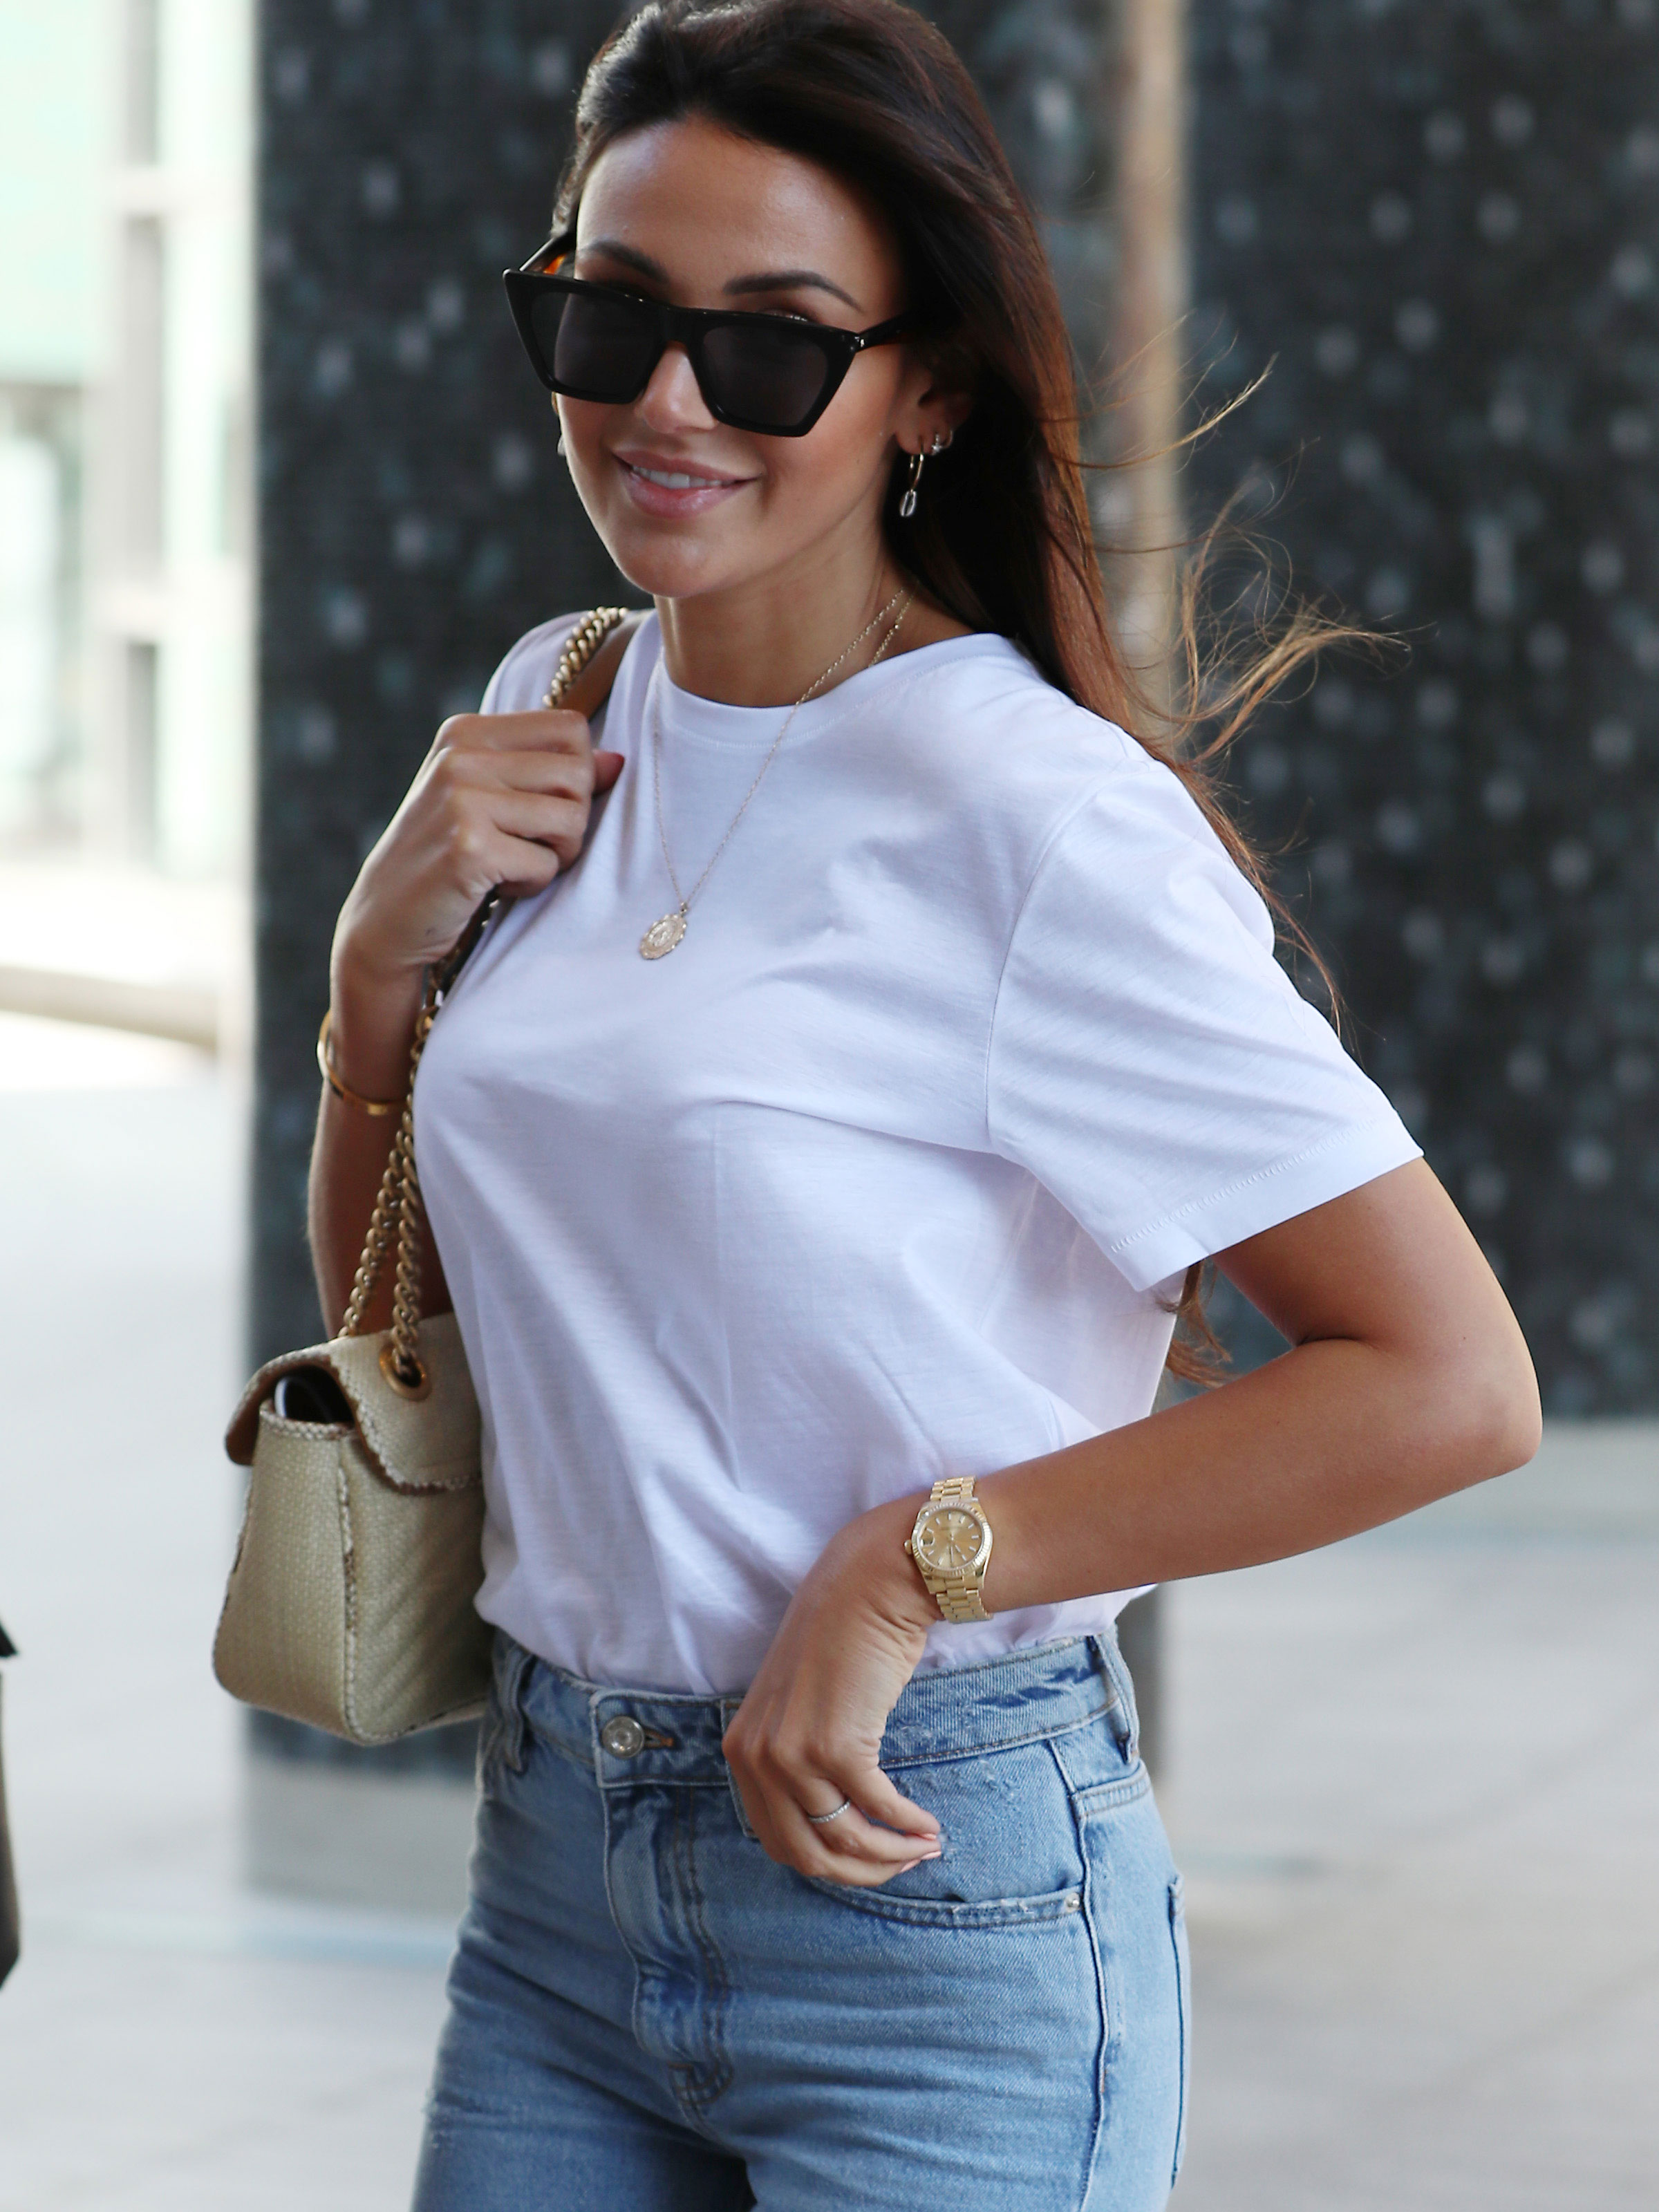 Michelle Keegan stuns as she collects fast food but fans hate her order